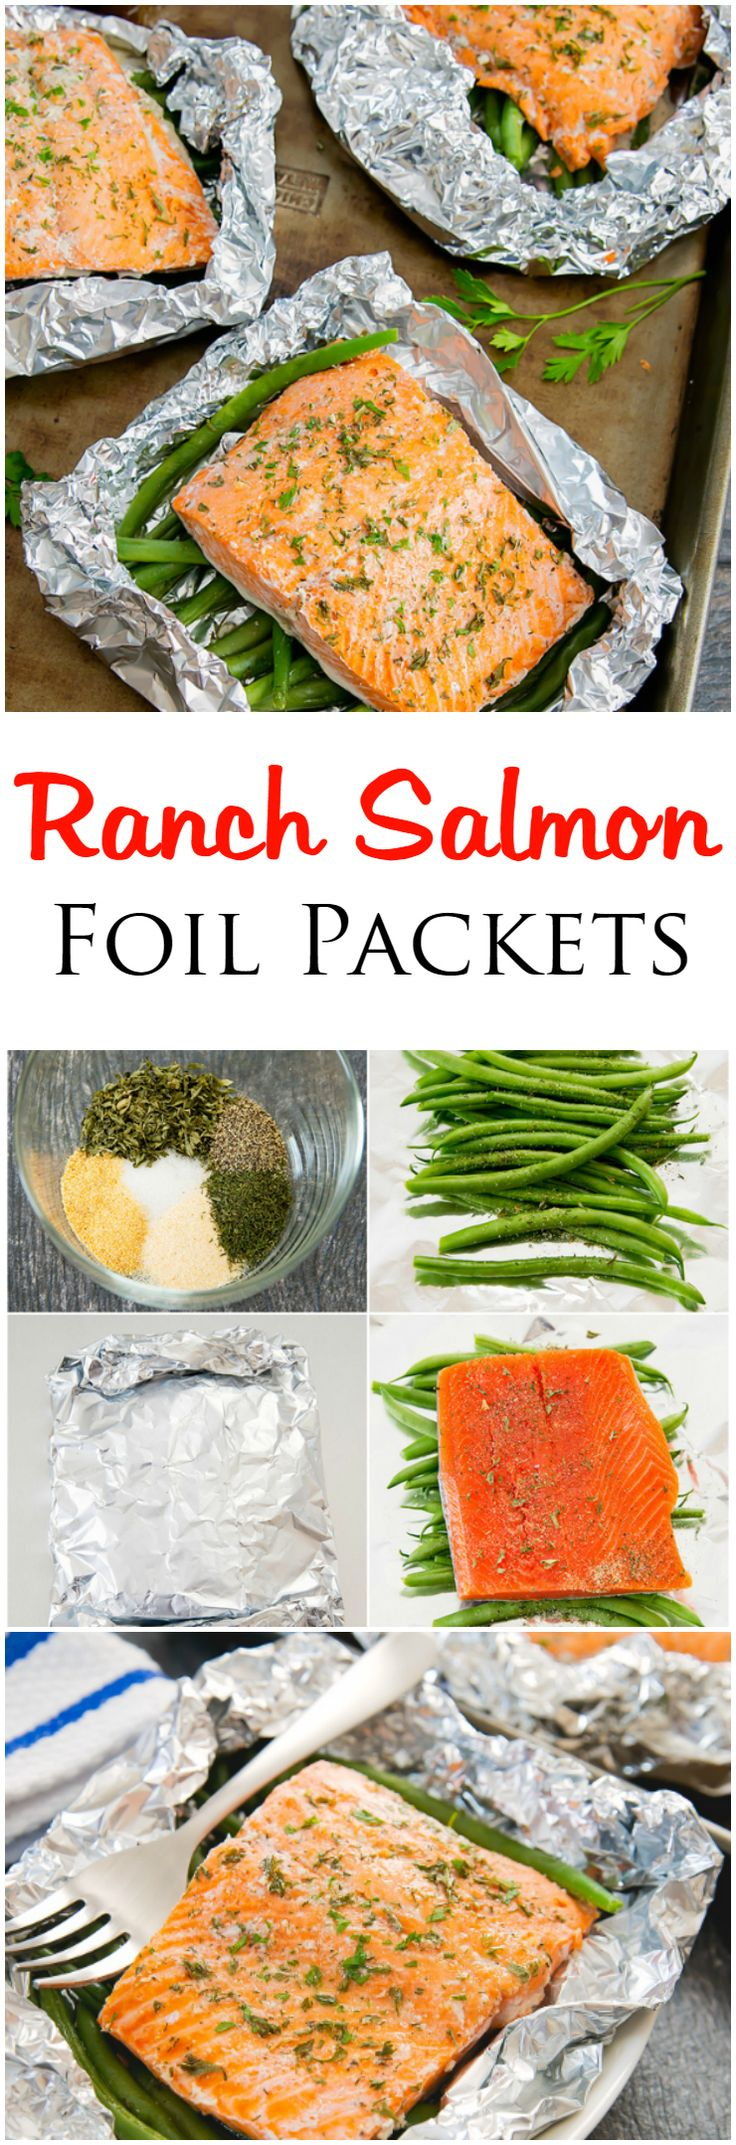 Ranch Salmon Foil Packets. Homemade ranch seasoning is sprinkled over fish and…